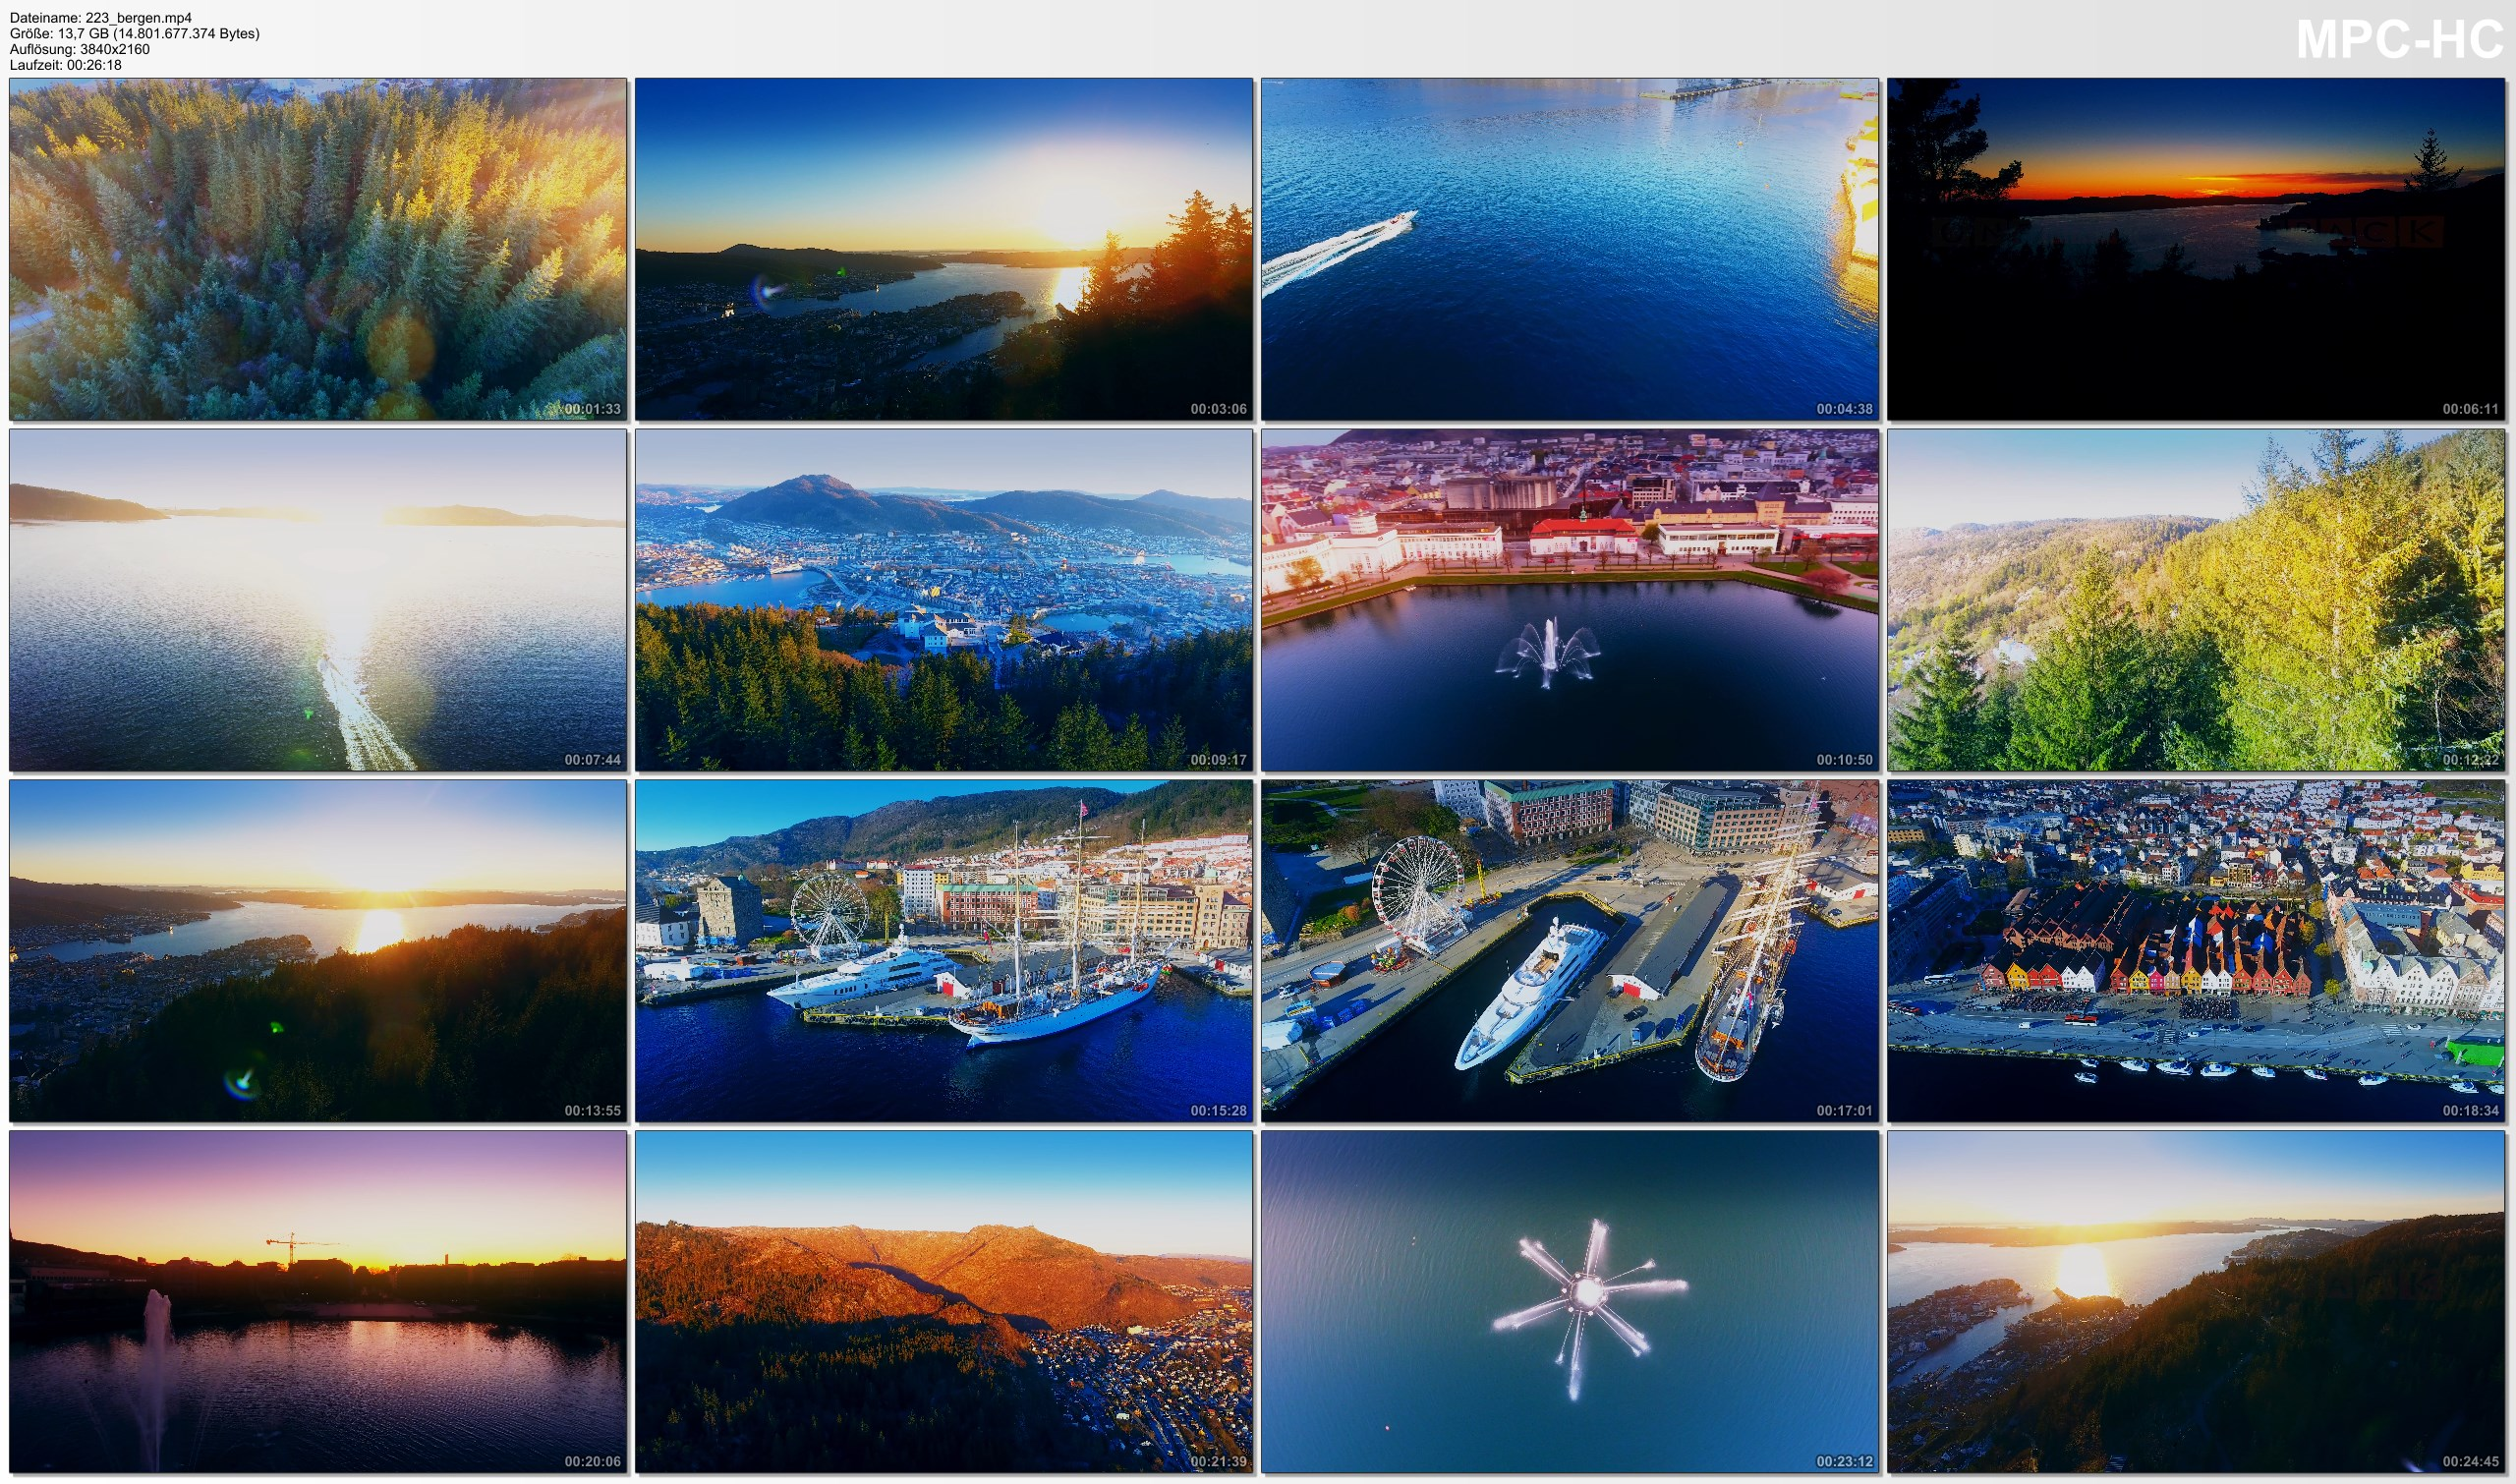 Drone Pictures from Video 【4K】Drone Footage | The Beauty of BERGEN in 27 Minutes 2019 | Cinematic Aerial Film | Norway